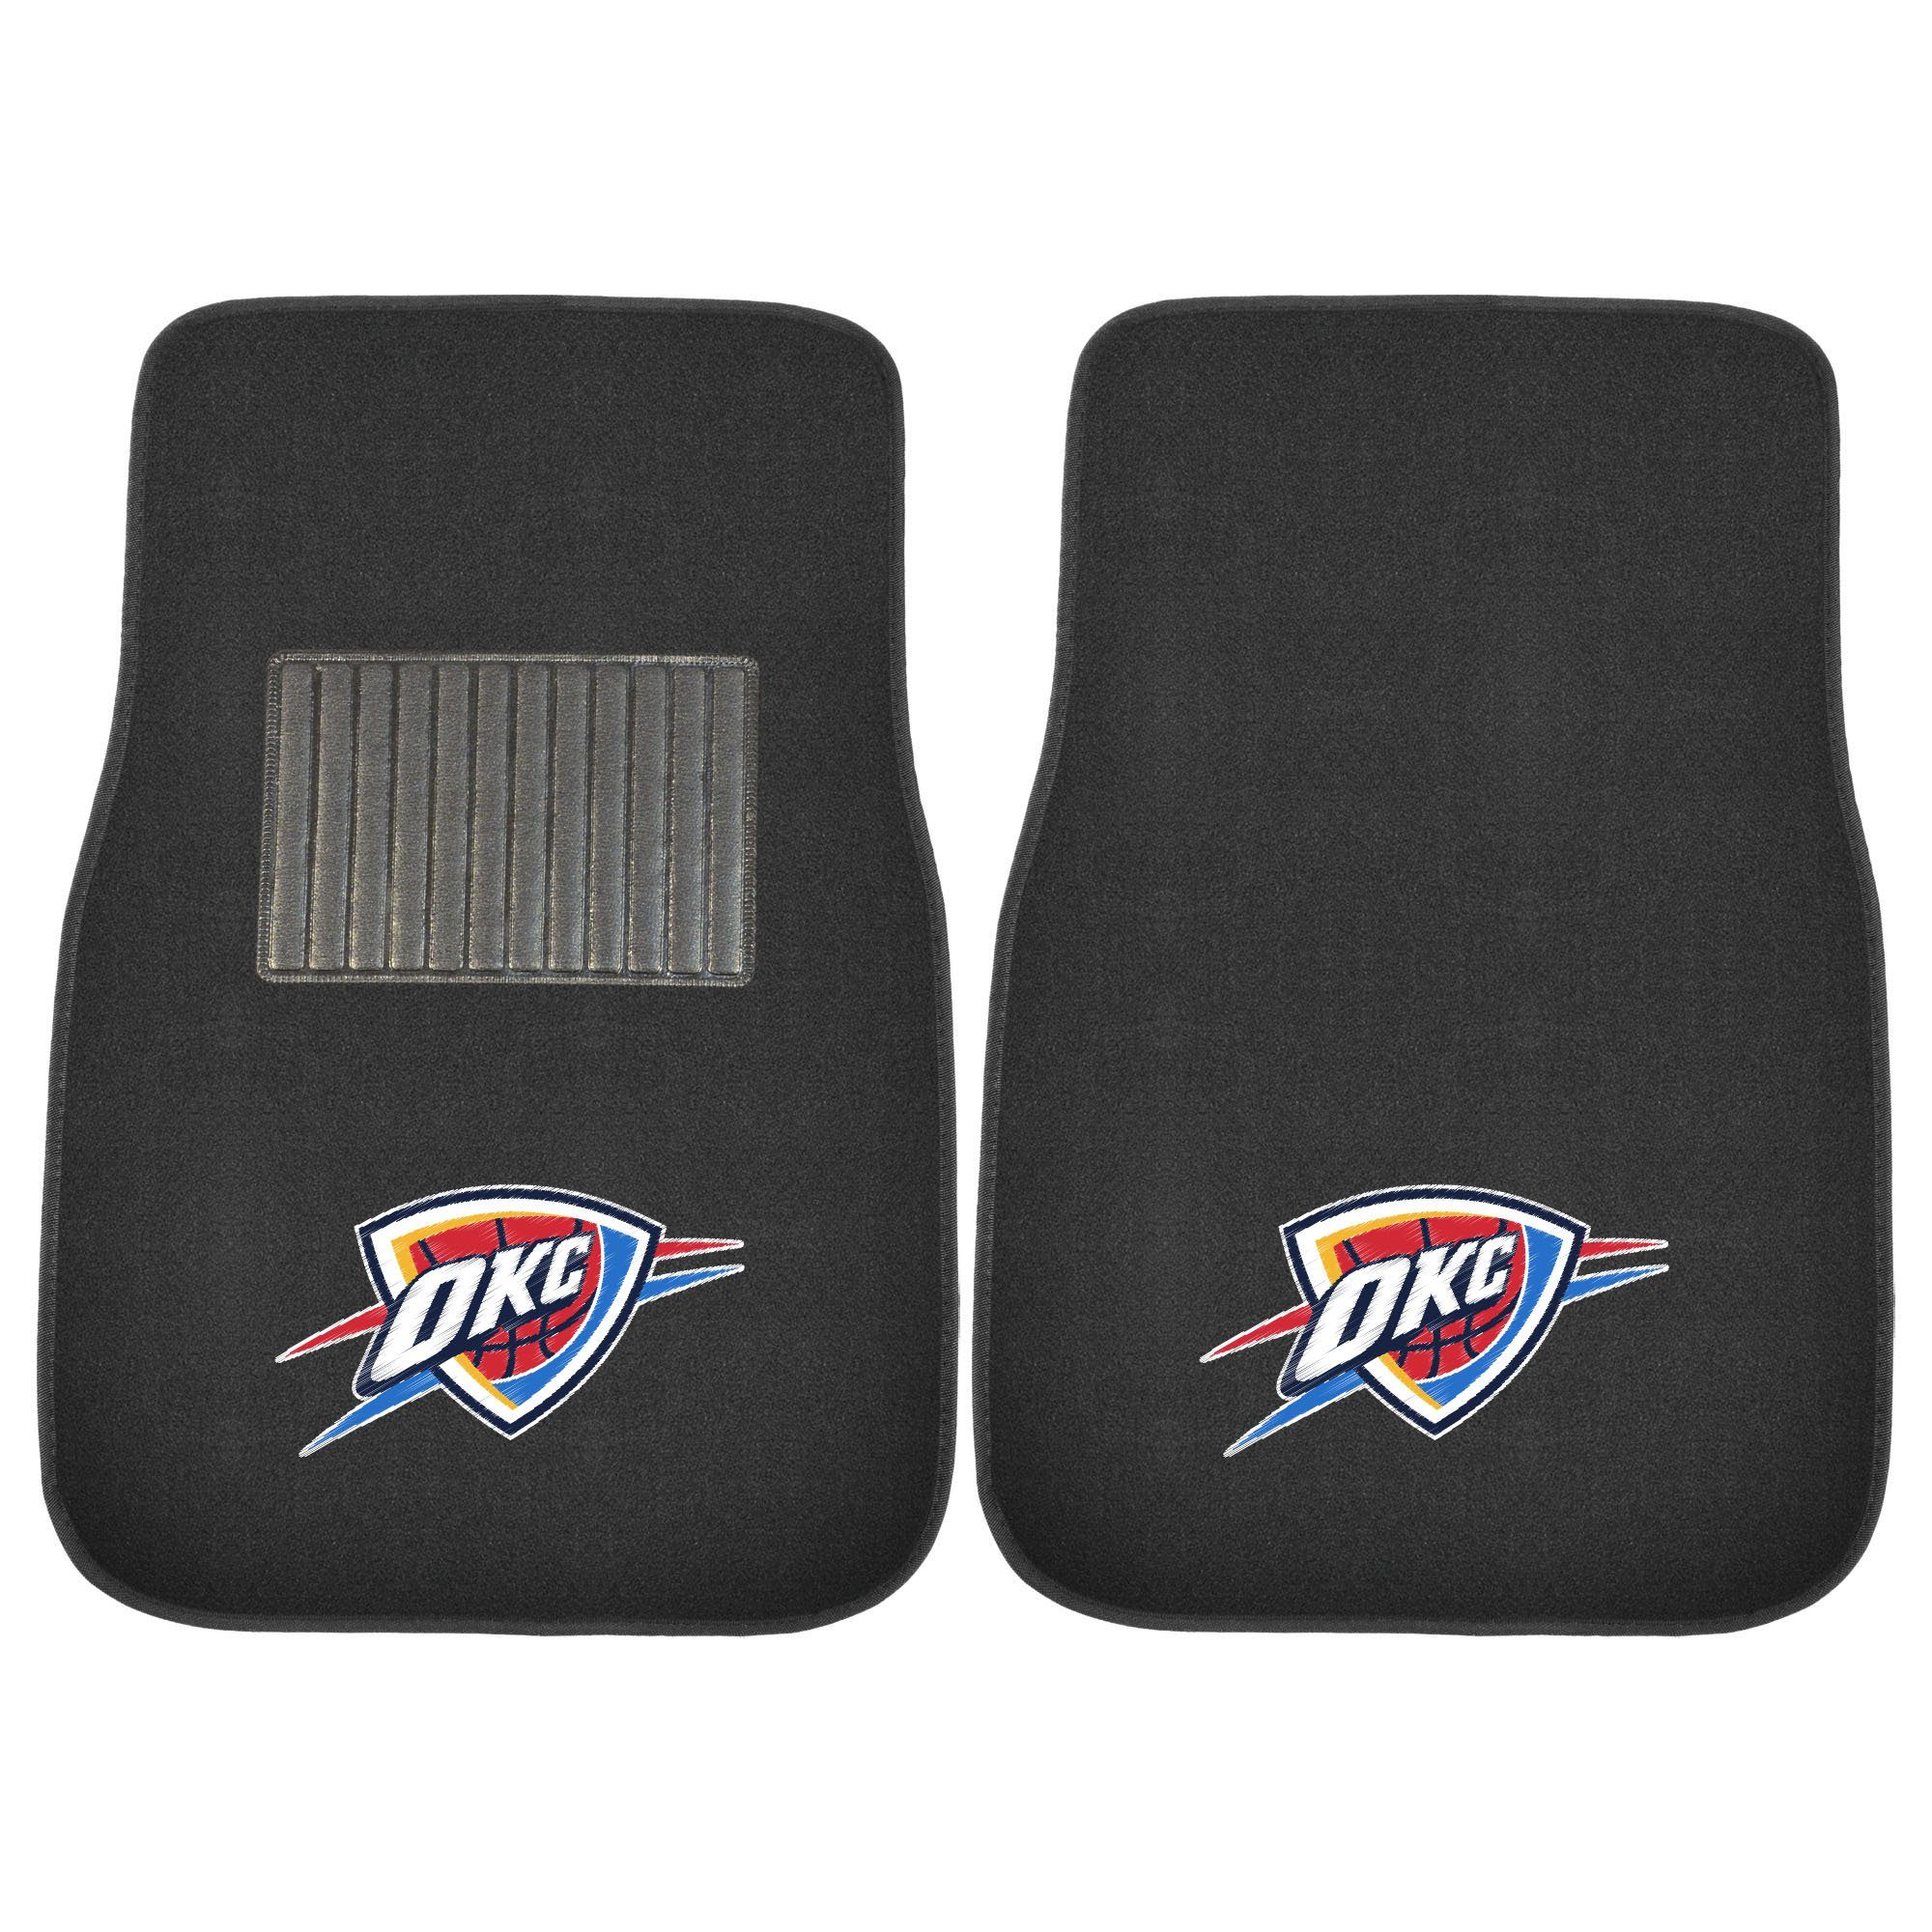 Fanmats 17612 NBA Oklahoma City Thunder 2-Piece Embroidered Car Mat by Fanmats